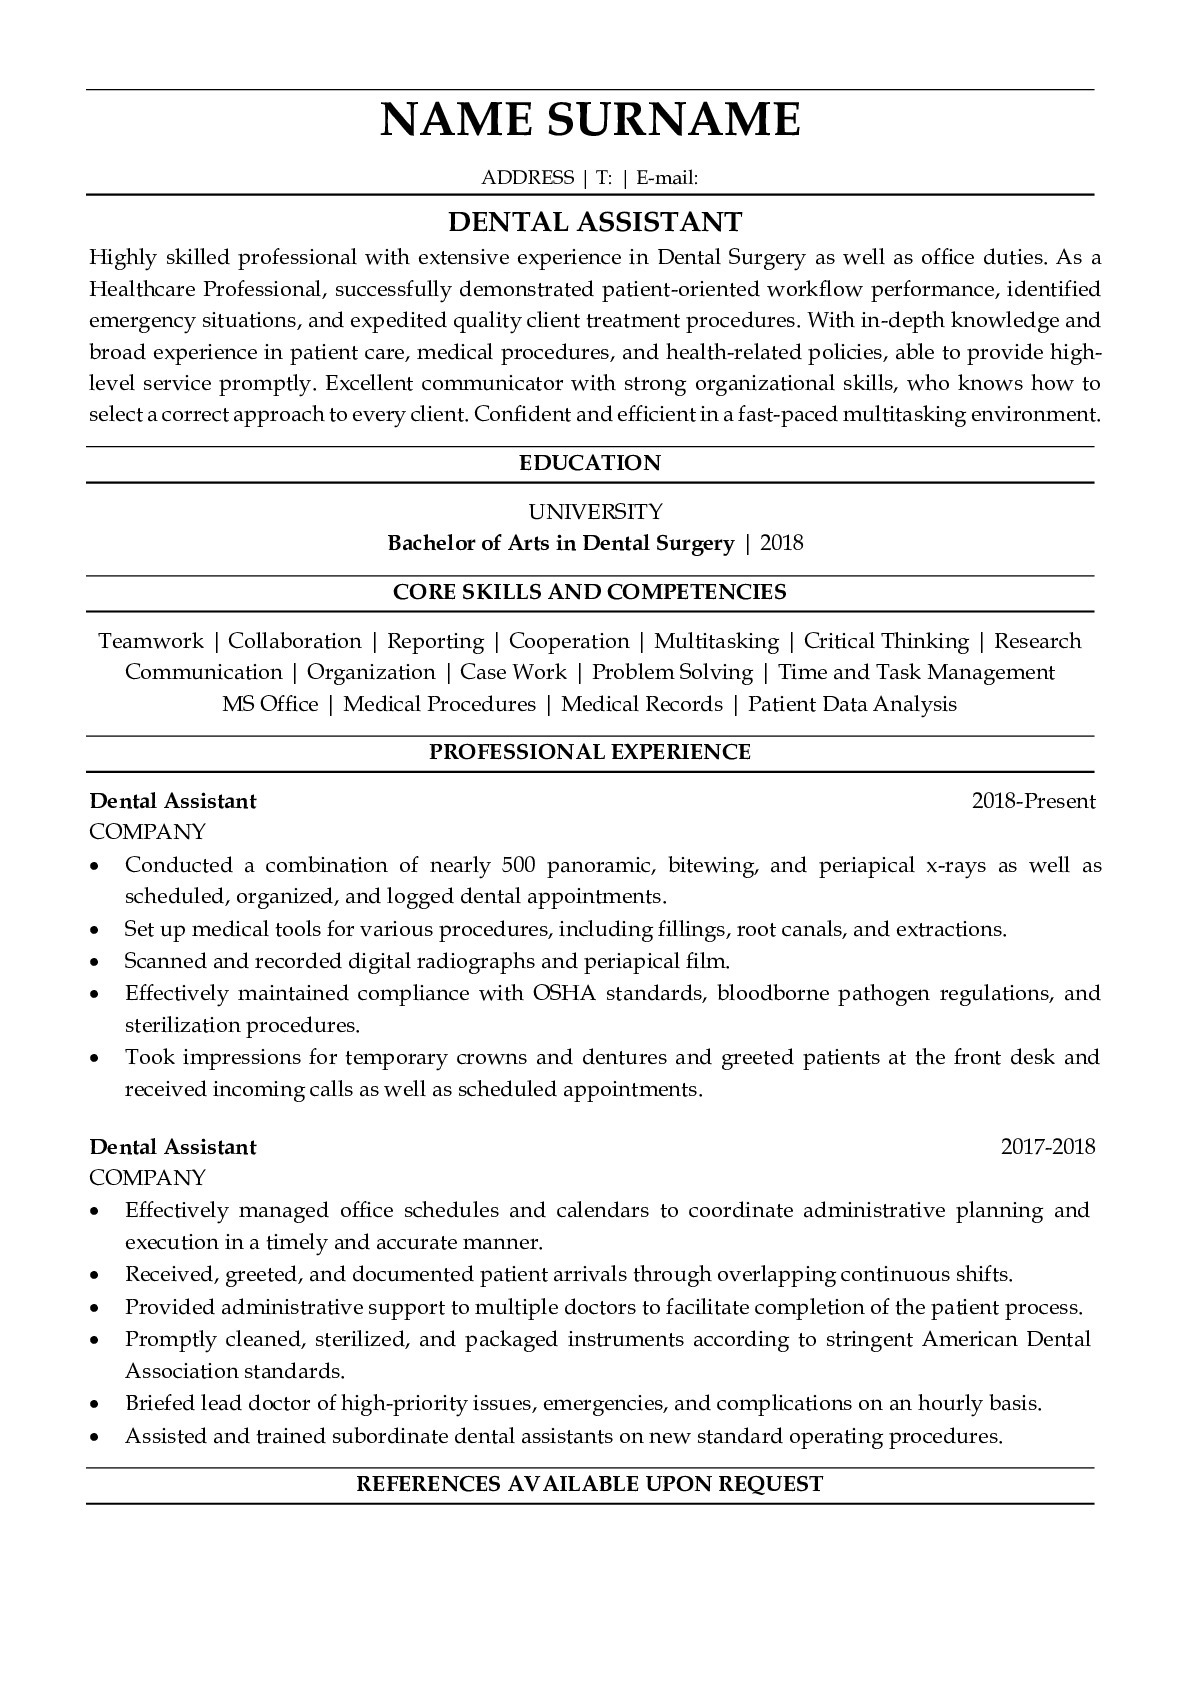 Resume Example for Dental Assistant